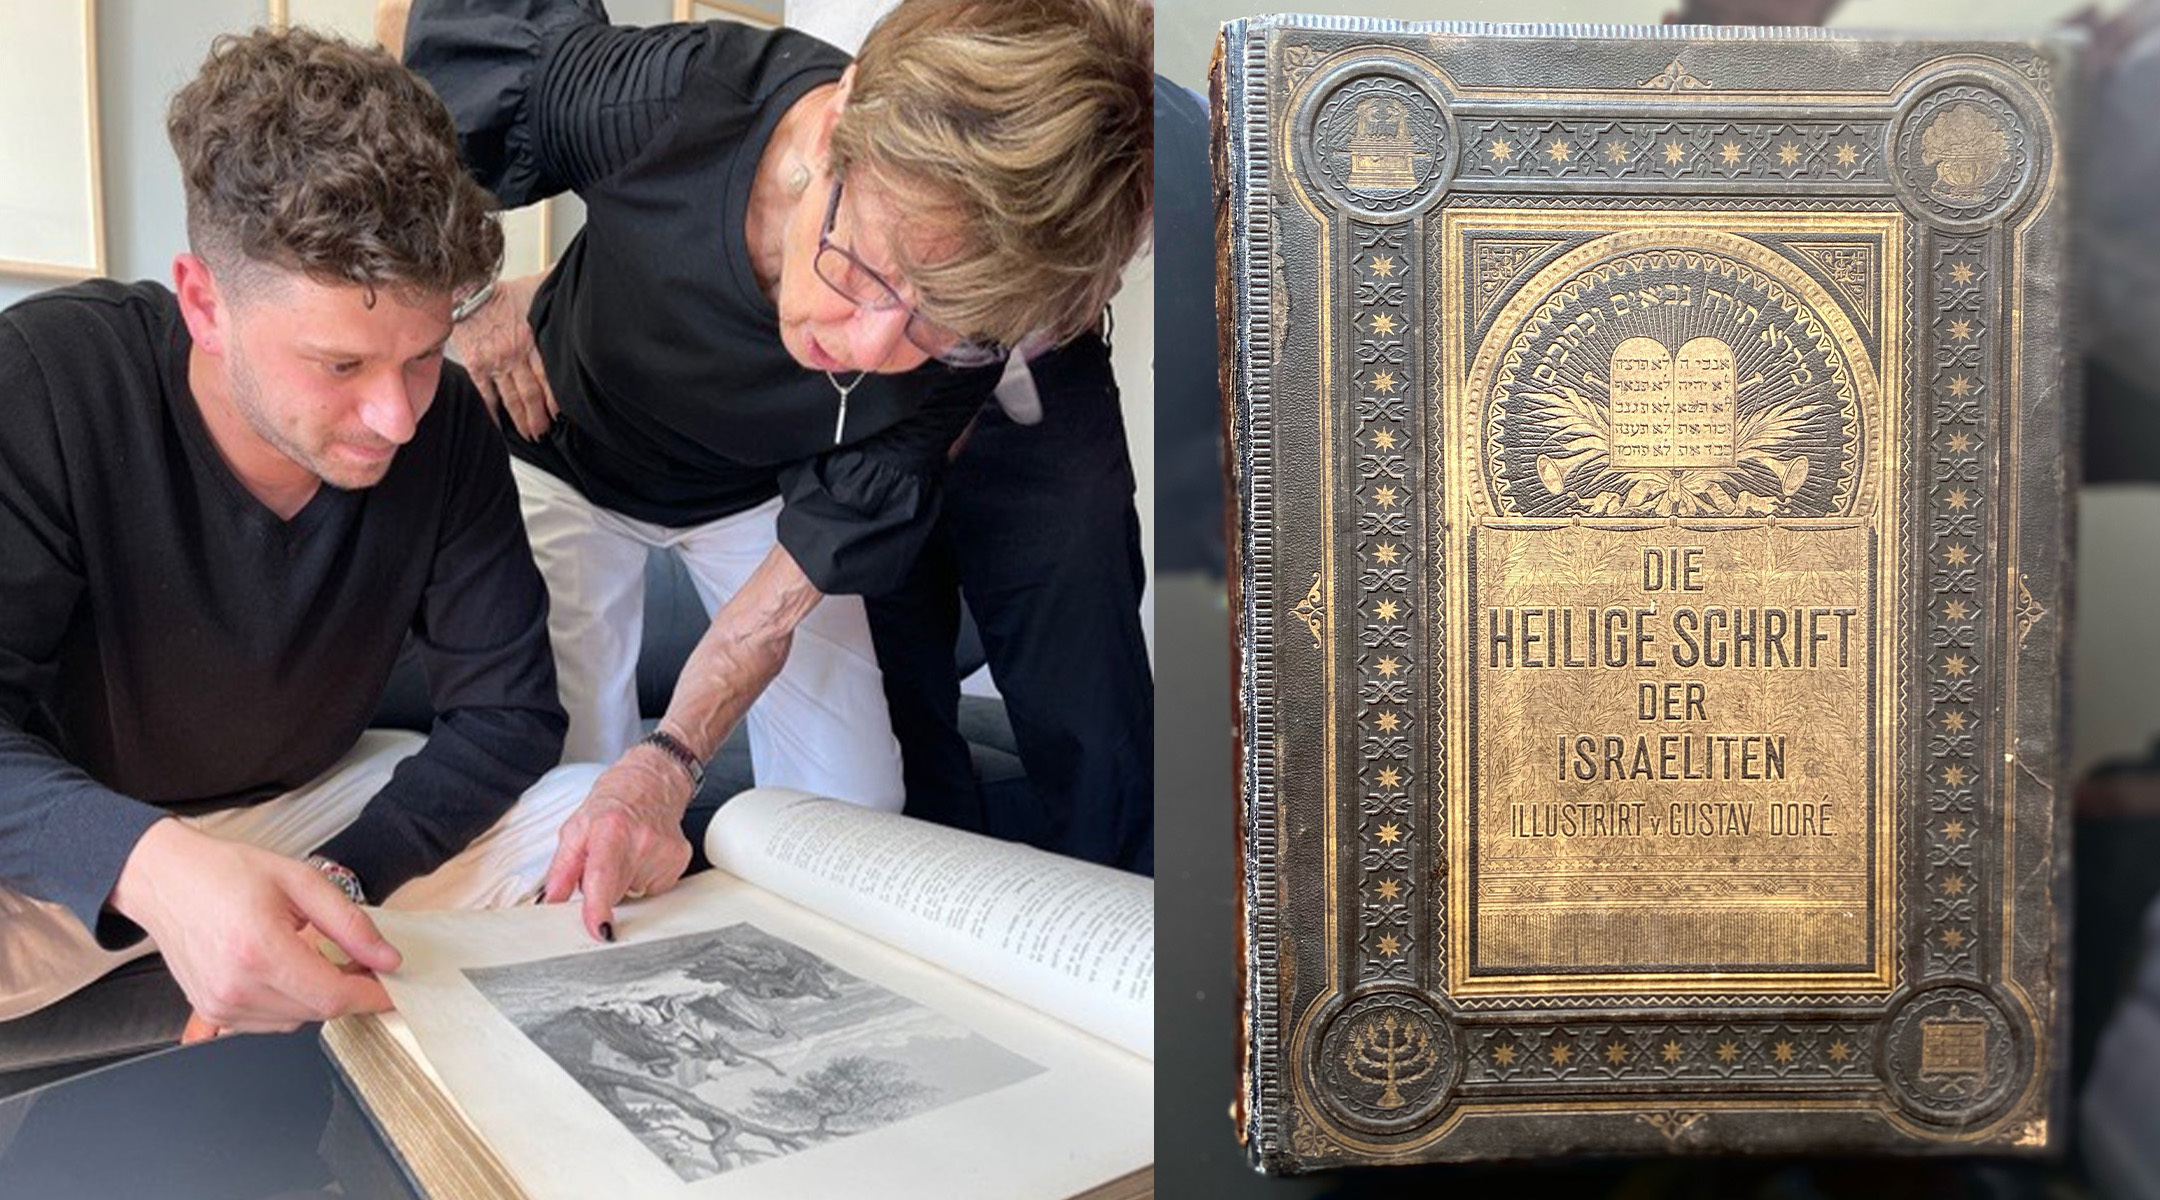 A New York family is reunited with an heirloom Bible thought lost in the Holocaust